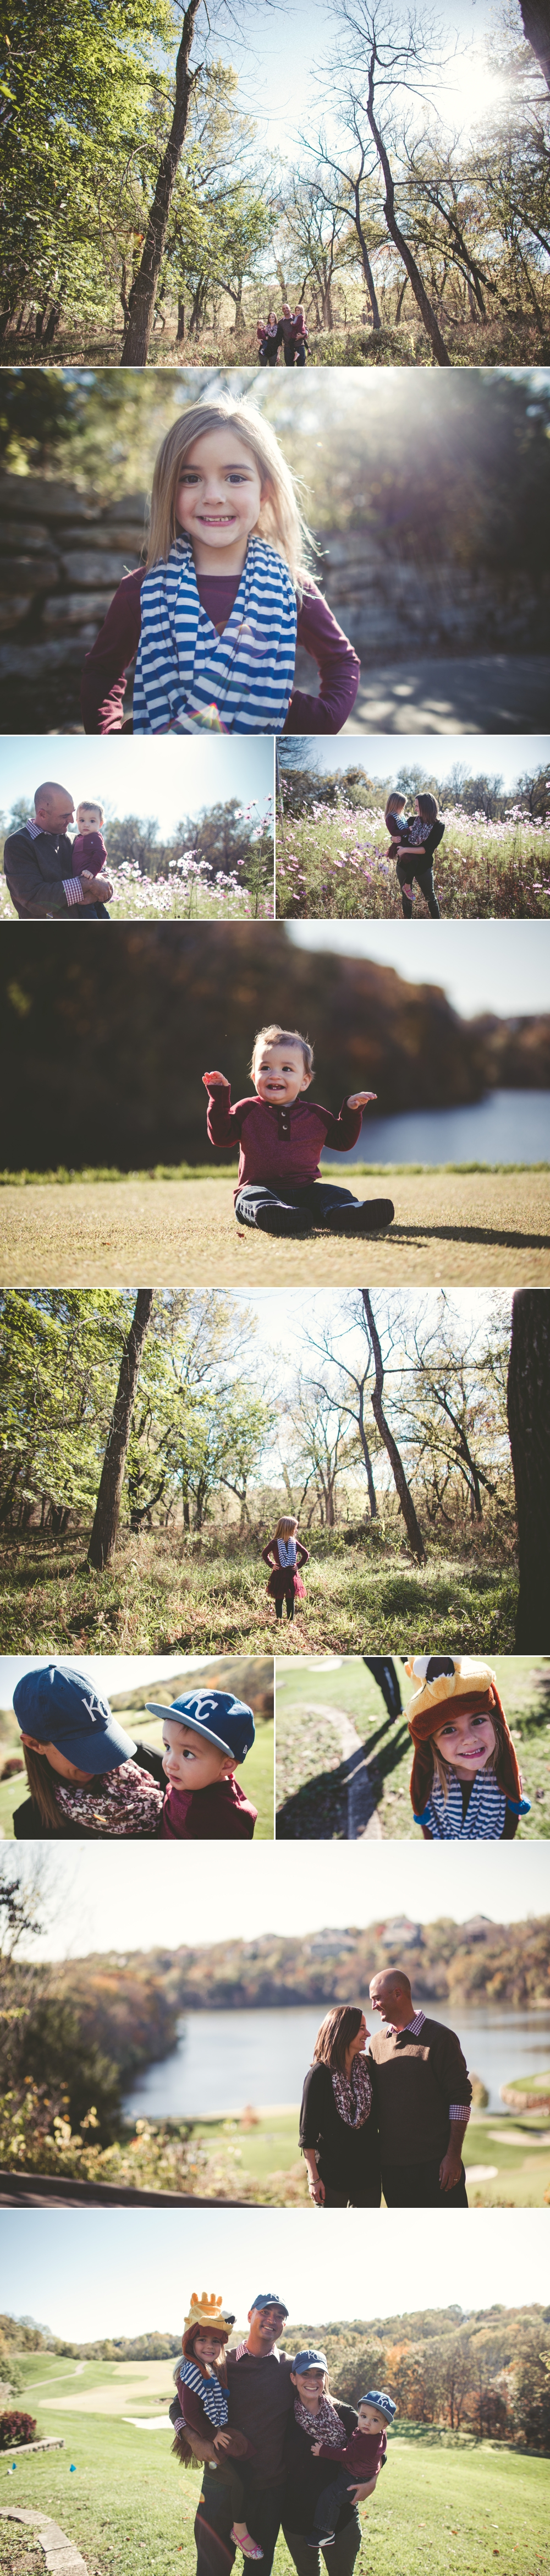 jason_domingues_photography_best_kansas_city_portrait_photographer_kc_family_session_golf_course_shadow_glen_olathe_fall_